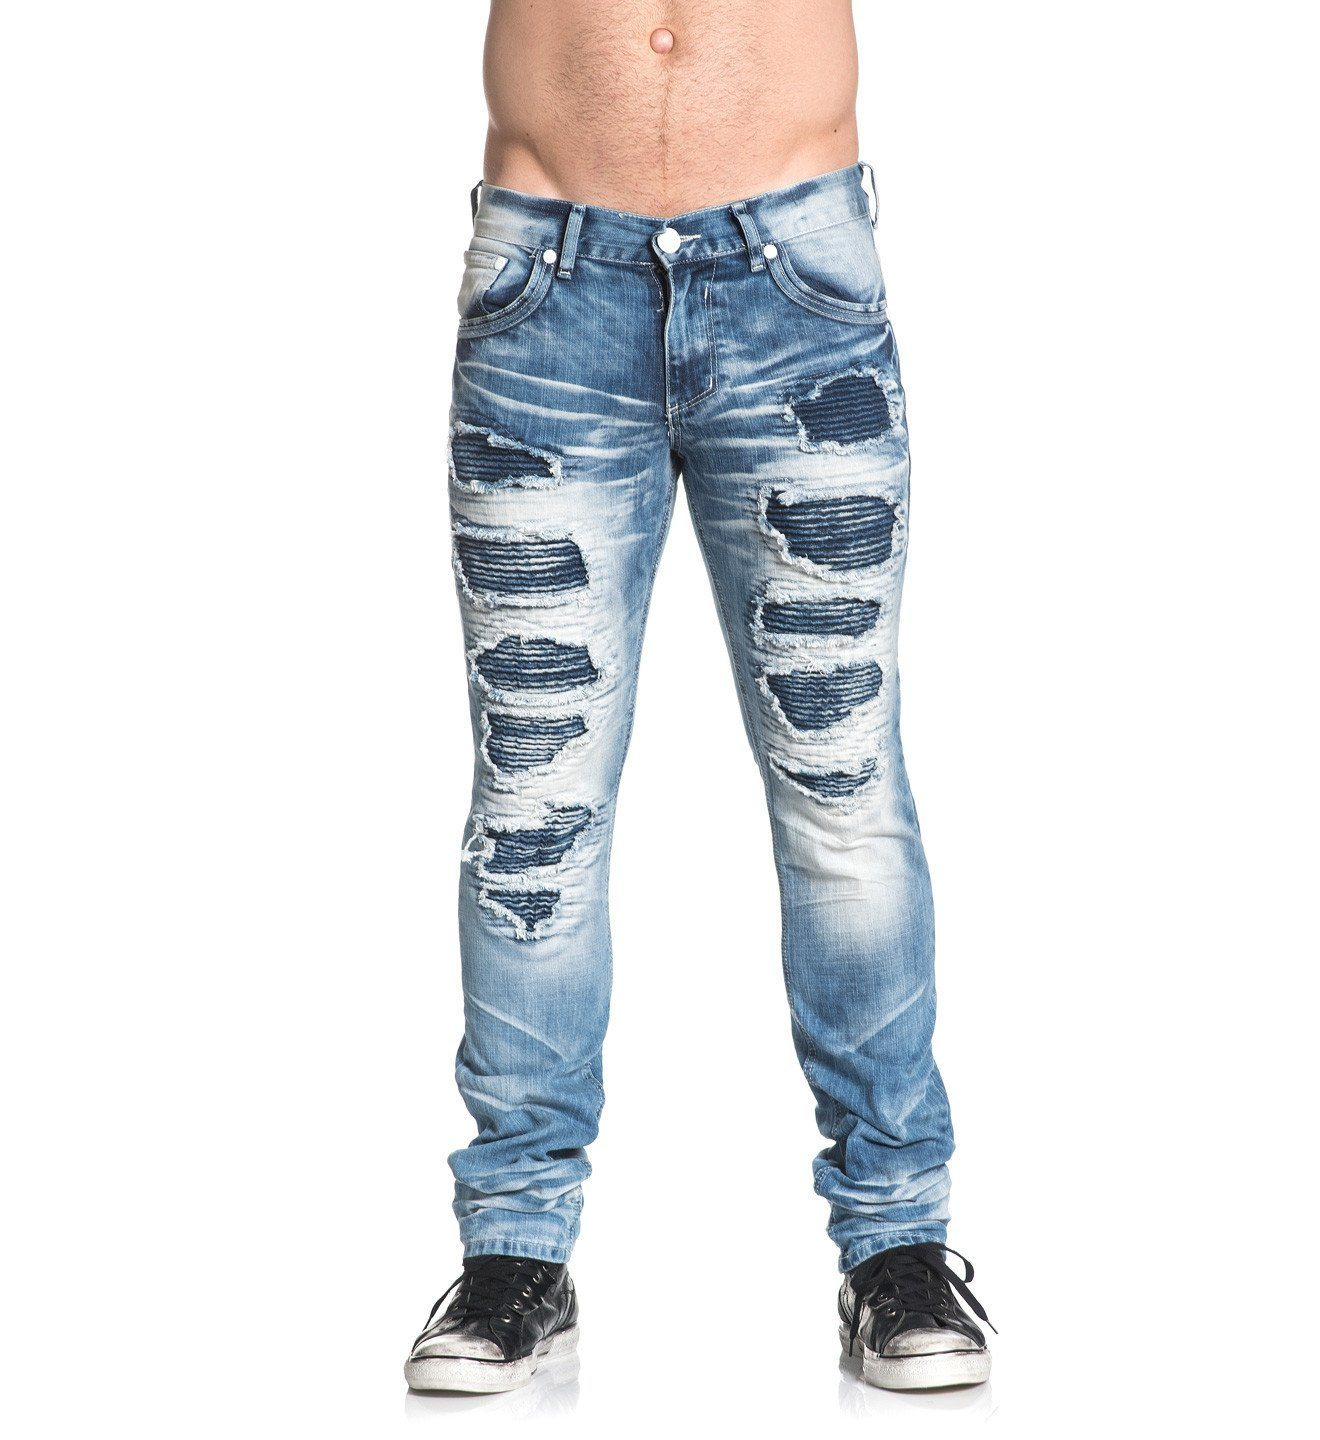 Mens Denim Bottoms - Gage Standard Trenton